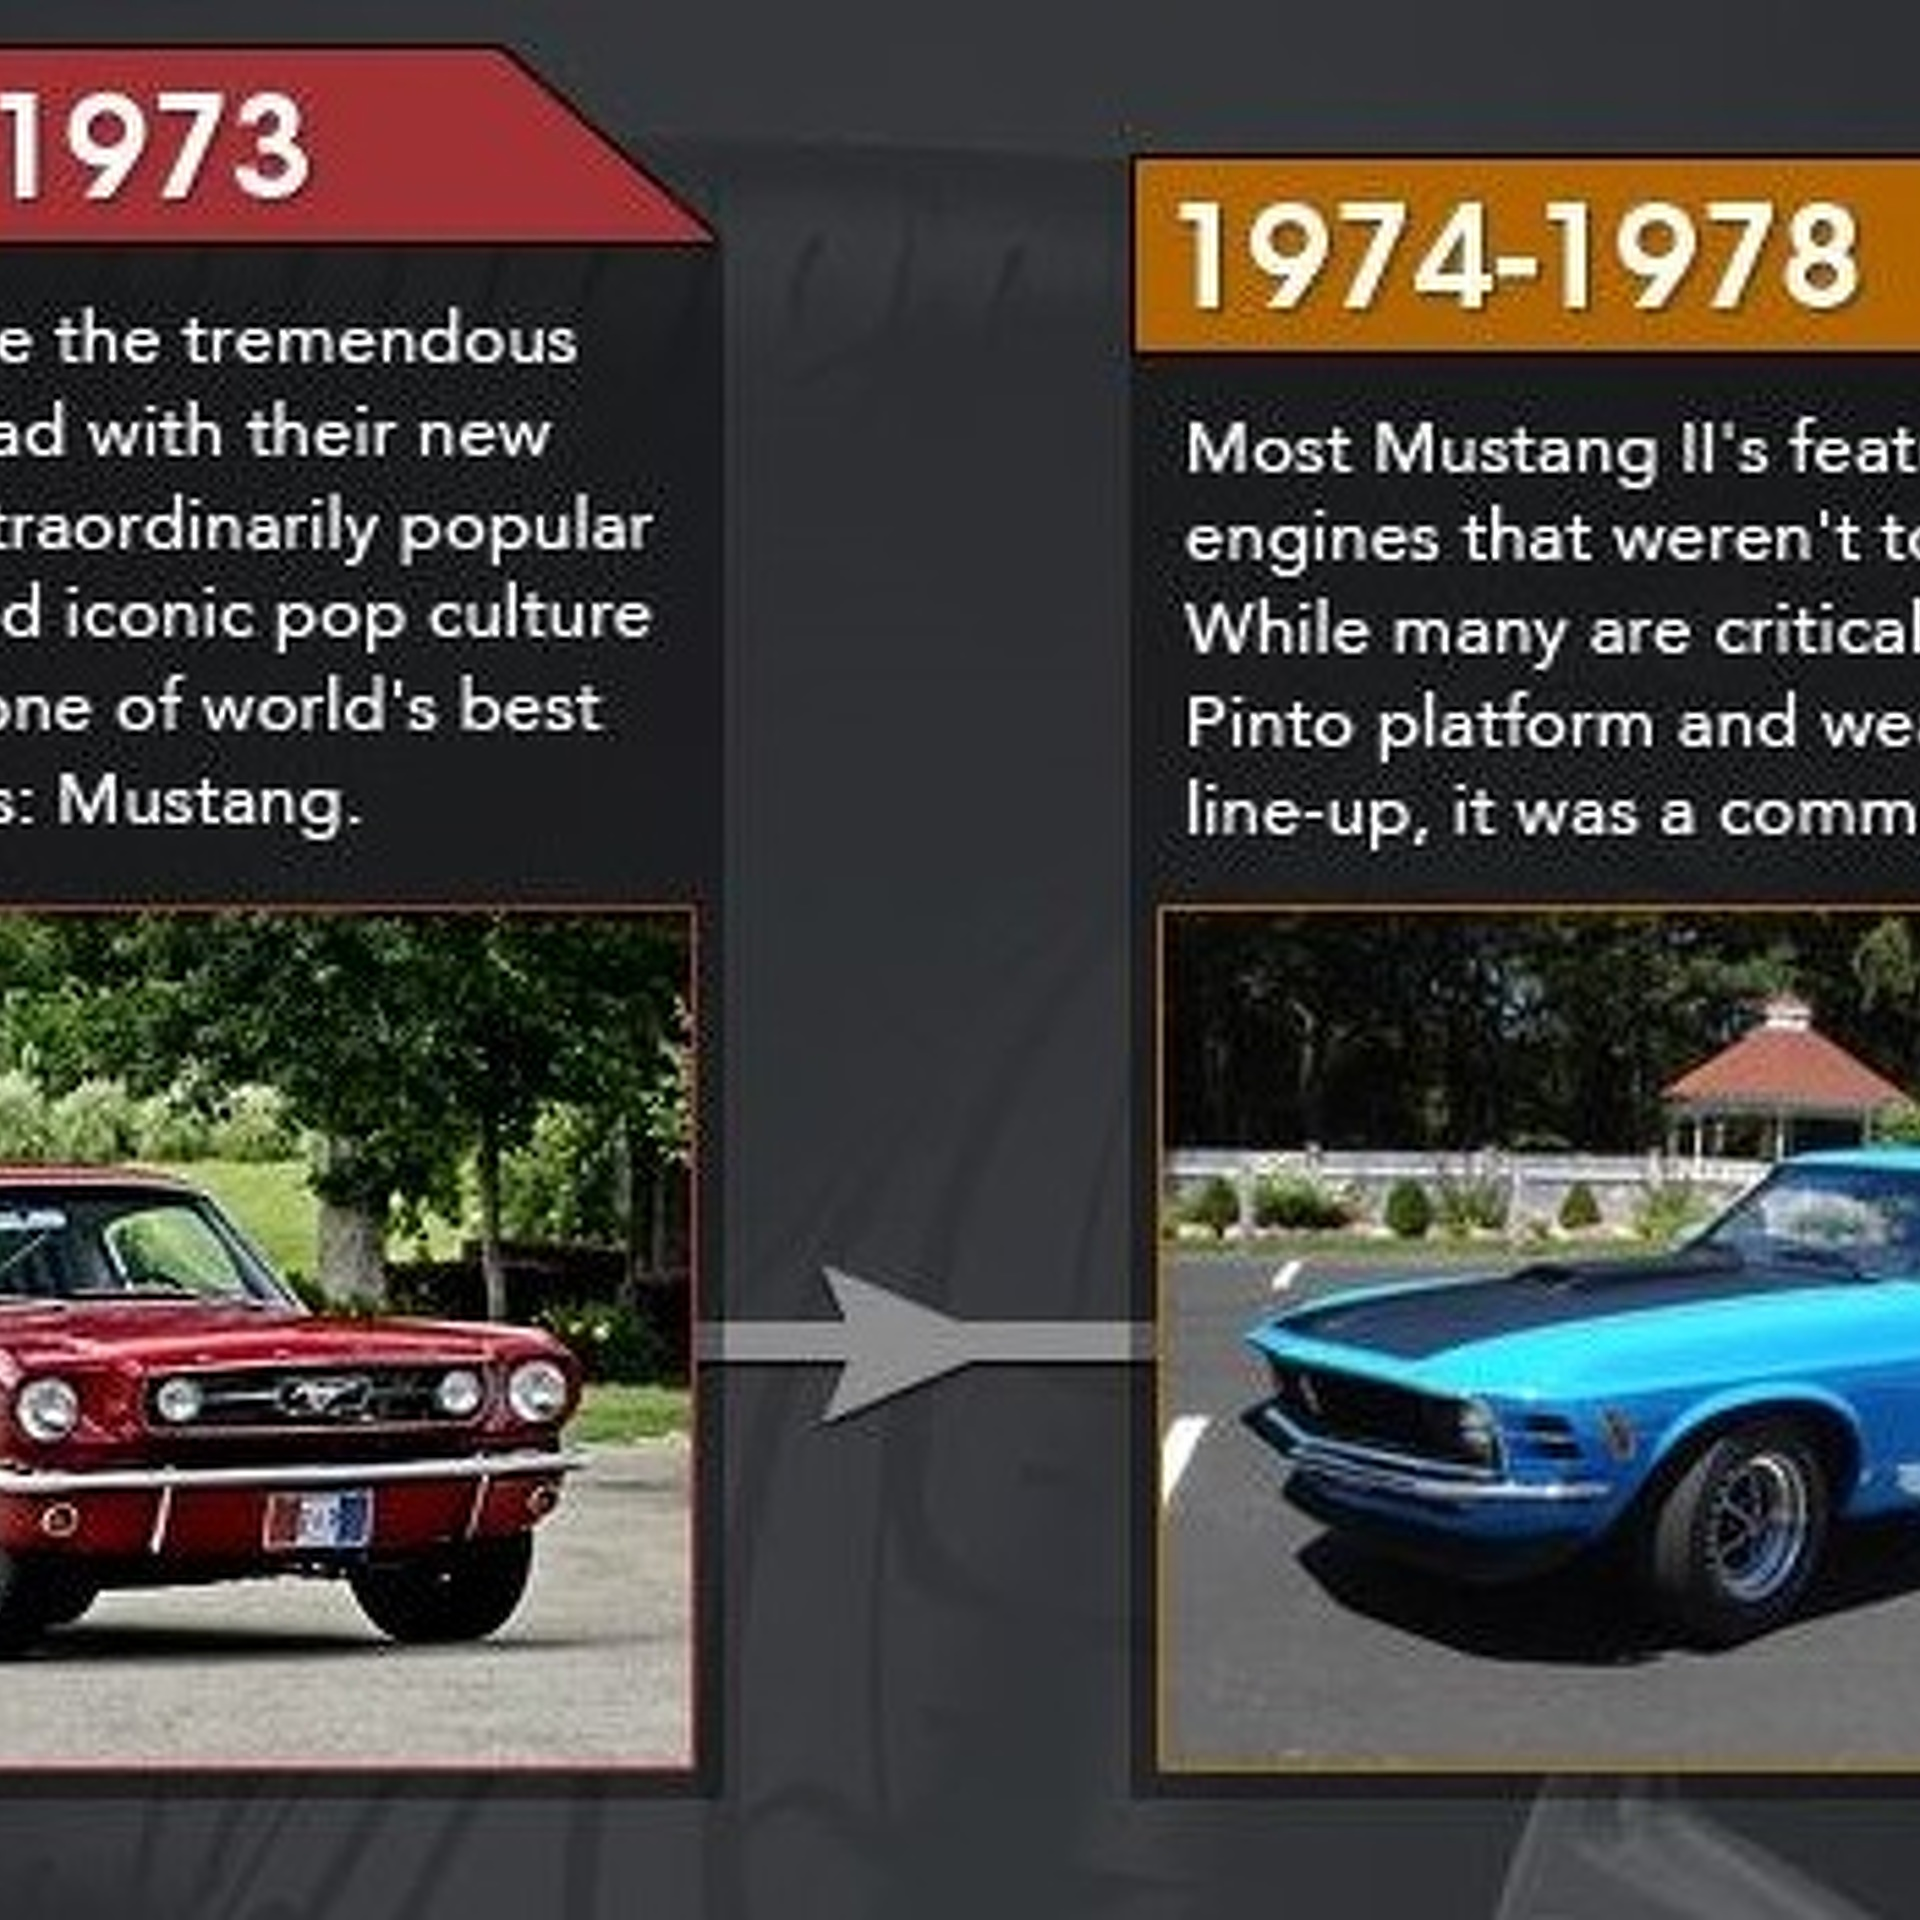 history of the ford mustang in pictures